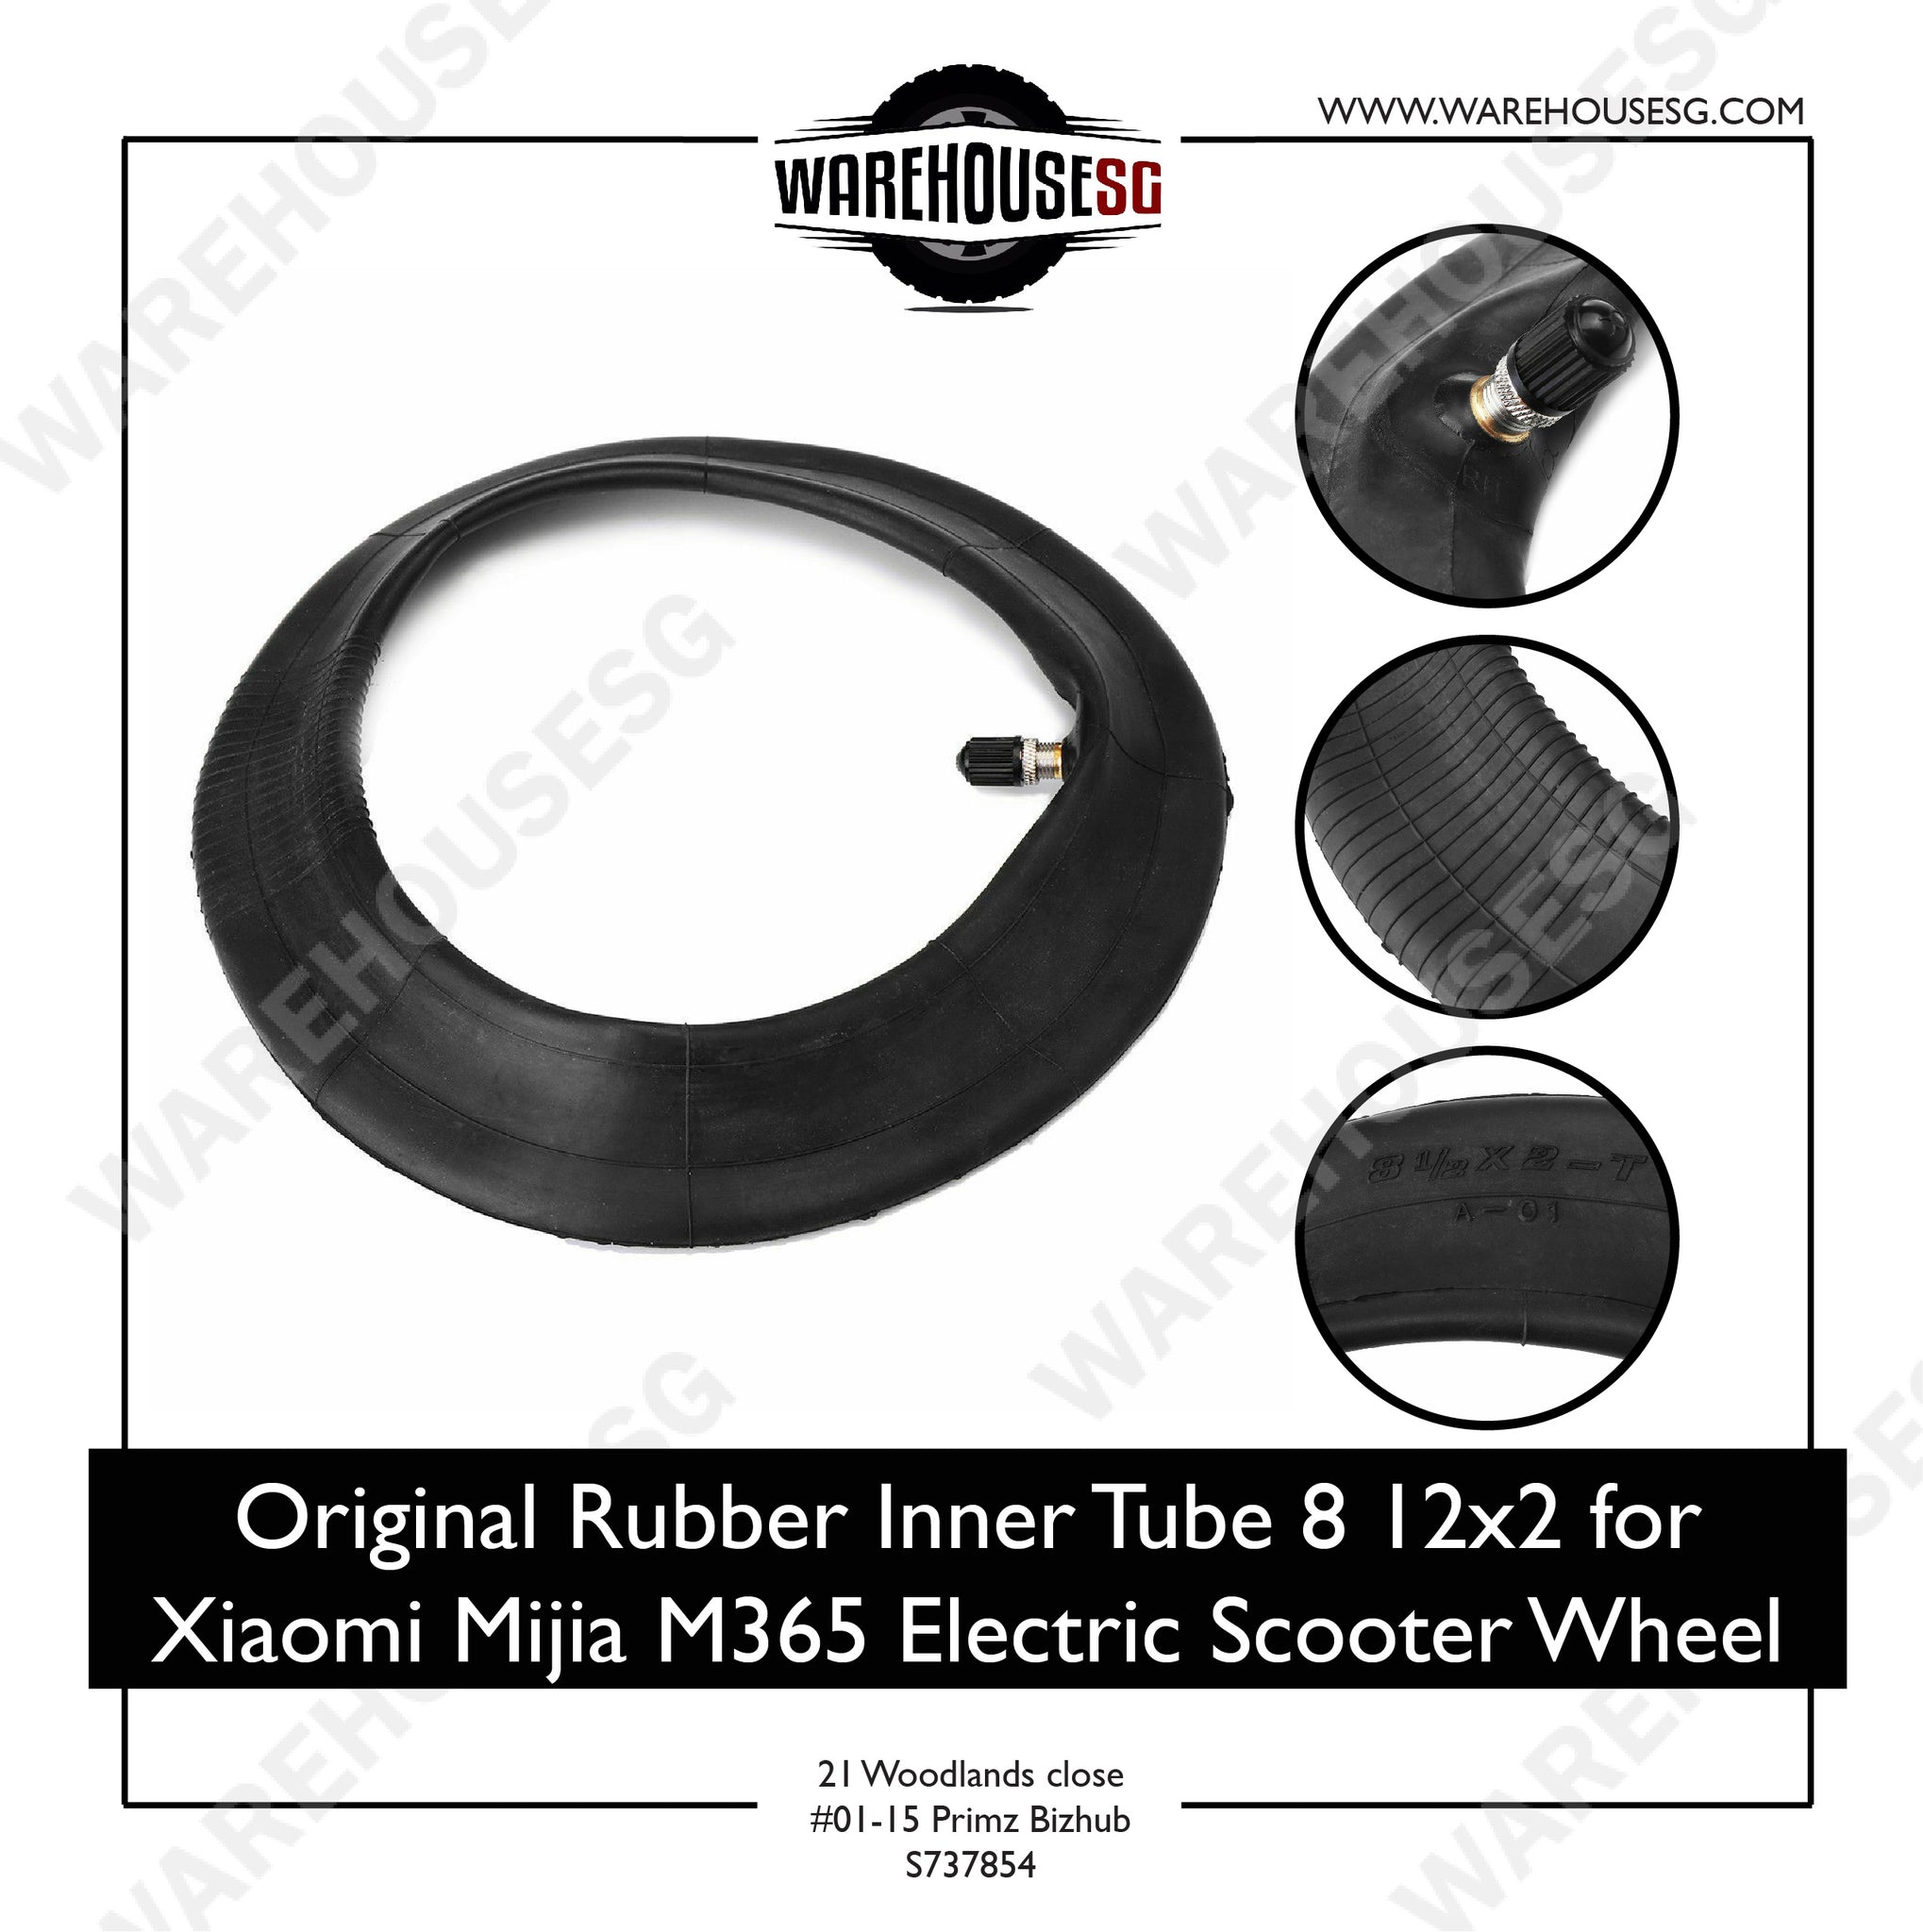 Original Rubber Inner Tube 8 1/2x2 for Xiaomi Mijia M365 Electric Scooter Wheel Tyre